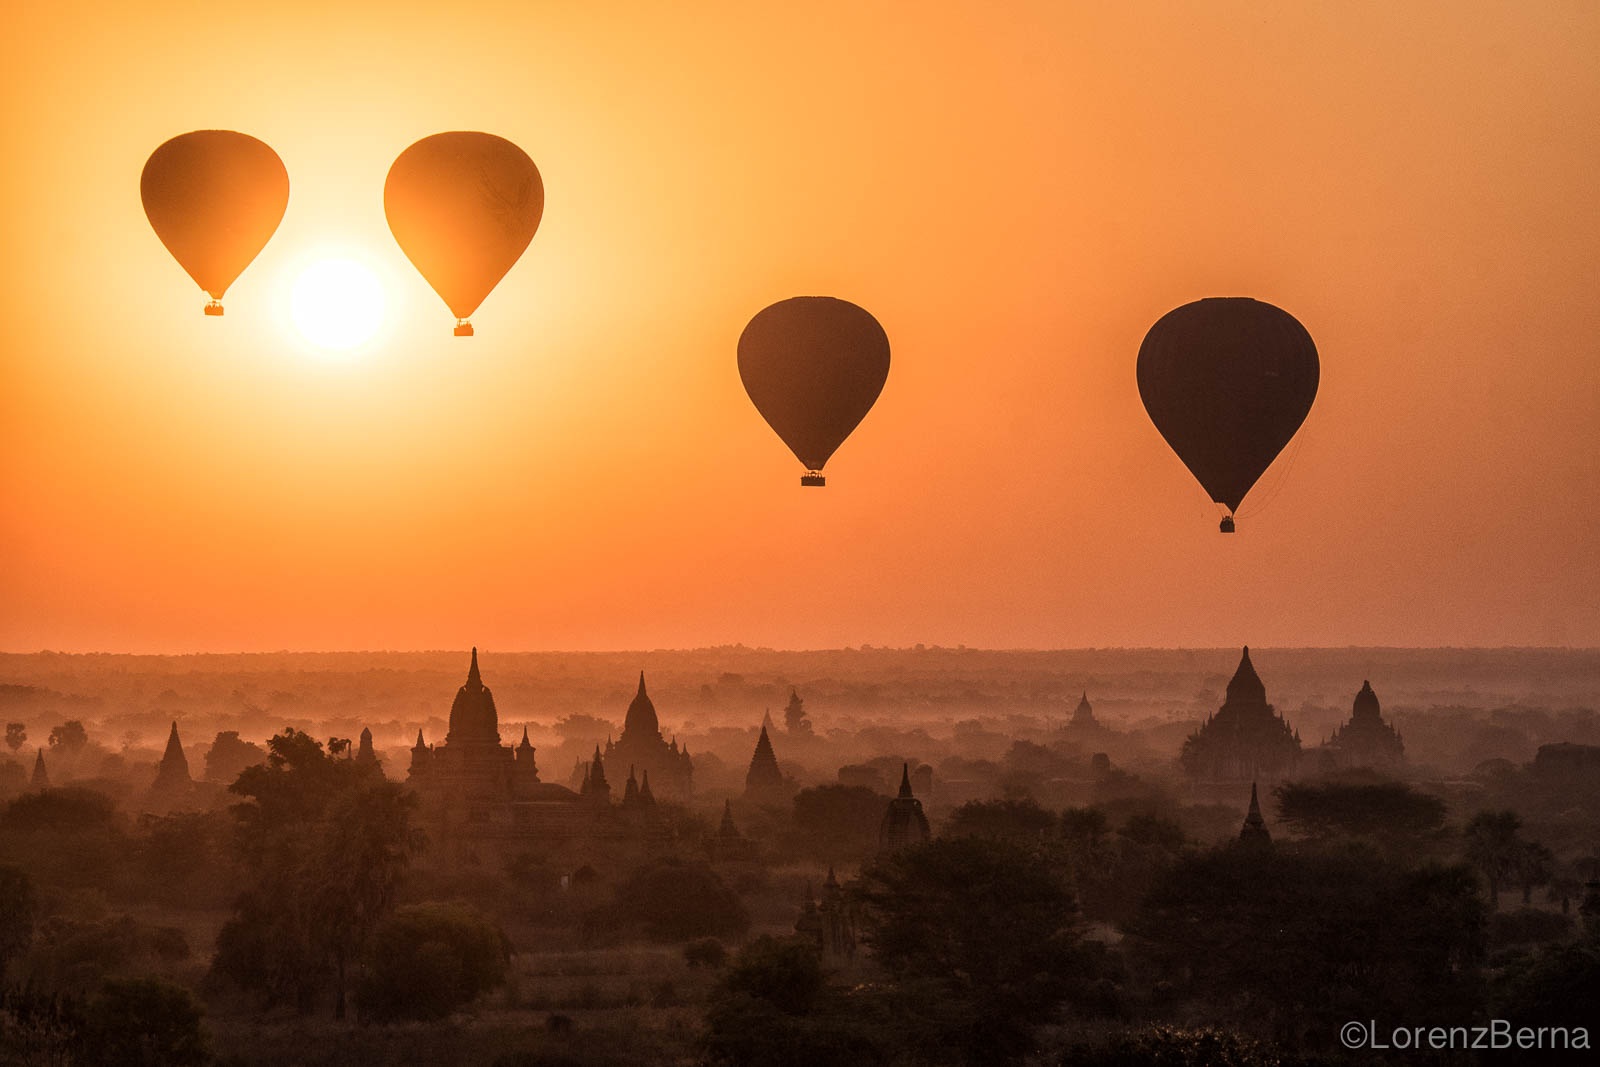 Hot air baloons rising over Bagan - Myanmar travel photography by Lorenz Berna